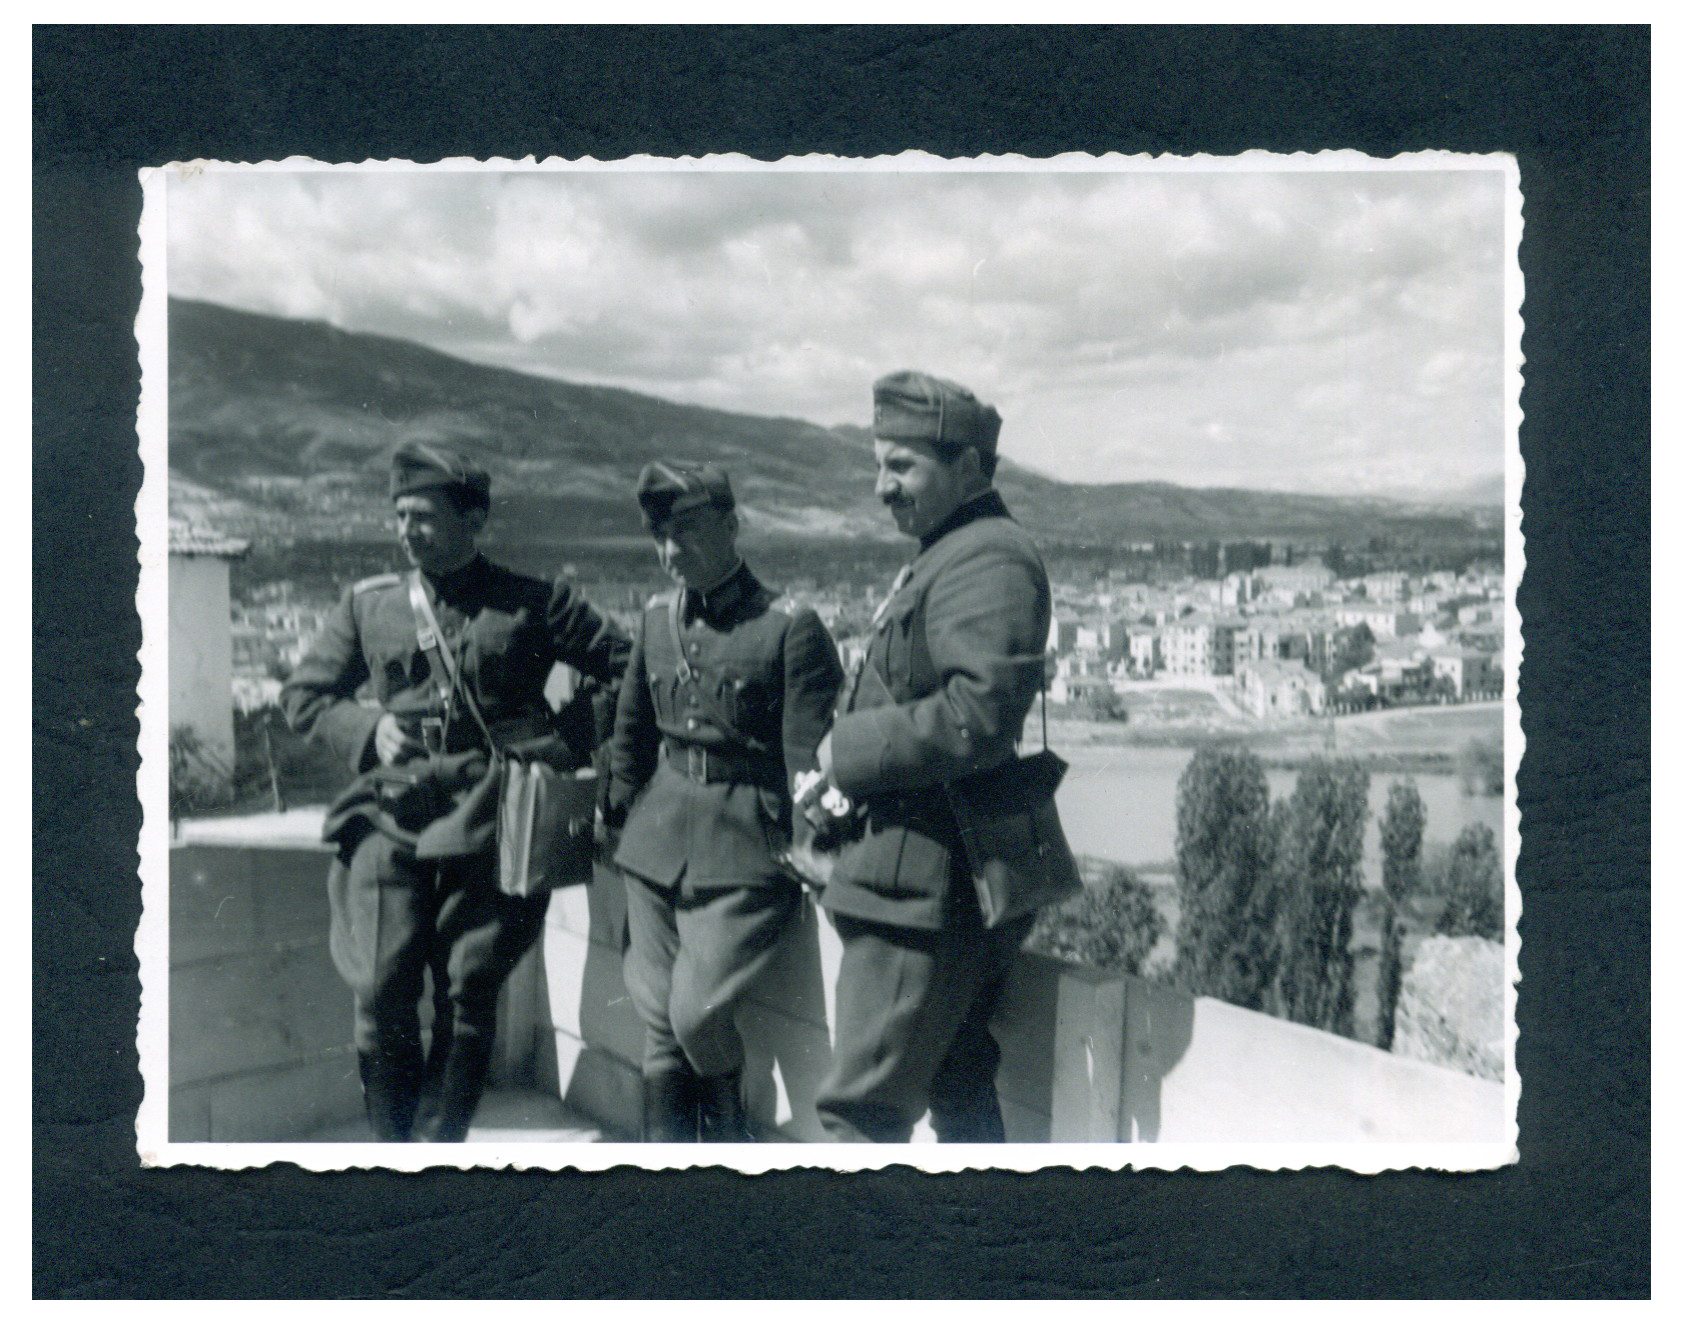 Three men in military uniforms, © Bilyana Braykova Karastoyanova